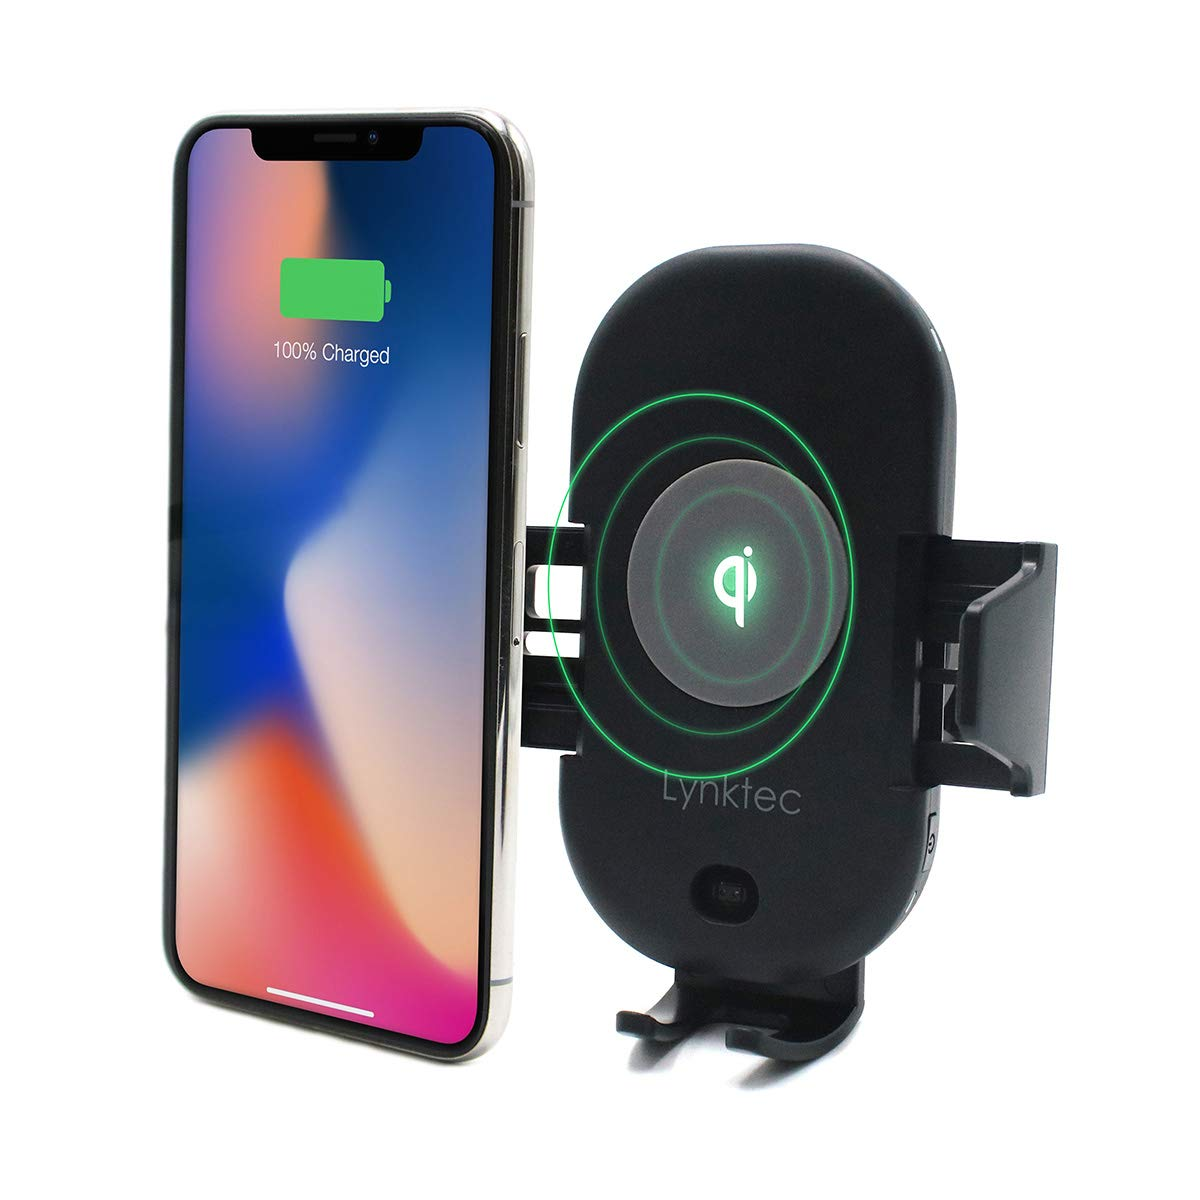 Bolt Car Mount and Qi Fast Wireless Charger with Auto Sense Locking for iPhone X, XS, 8, 8 Plus, Galaxy S10, S10+, S9, S9+, S8, S8+, and Qi-Enabled Devices